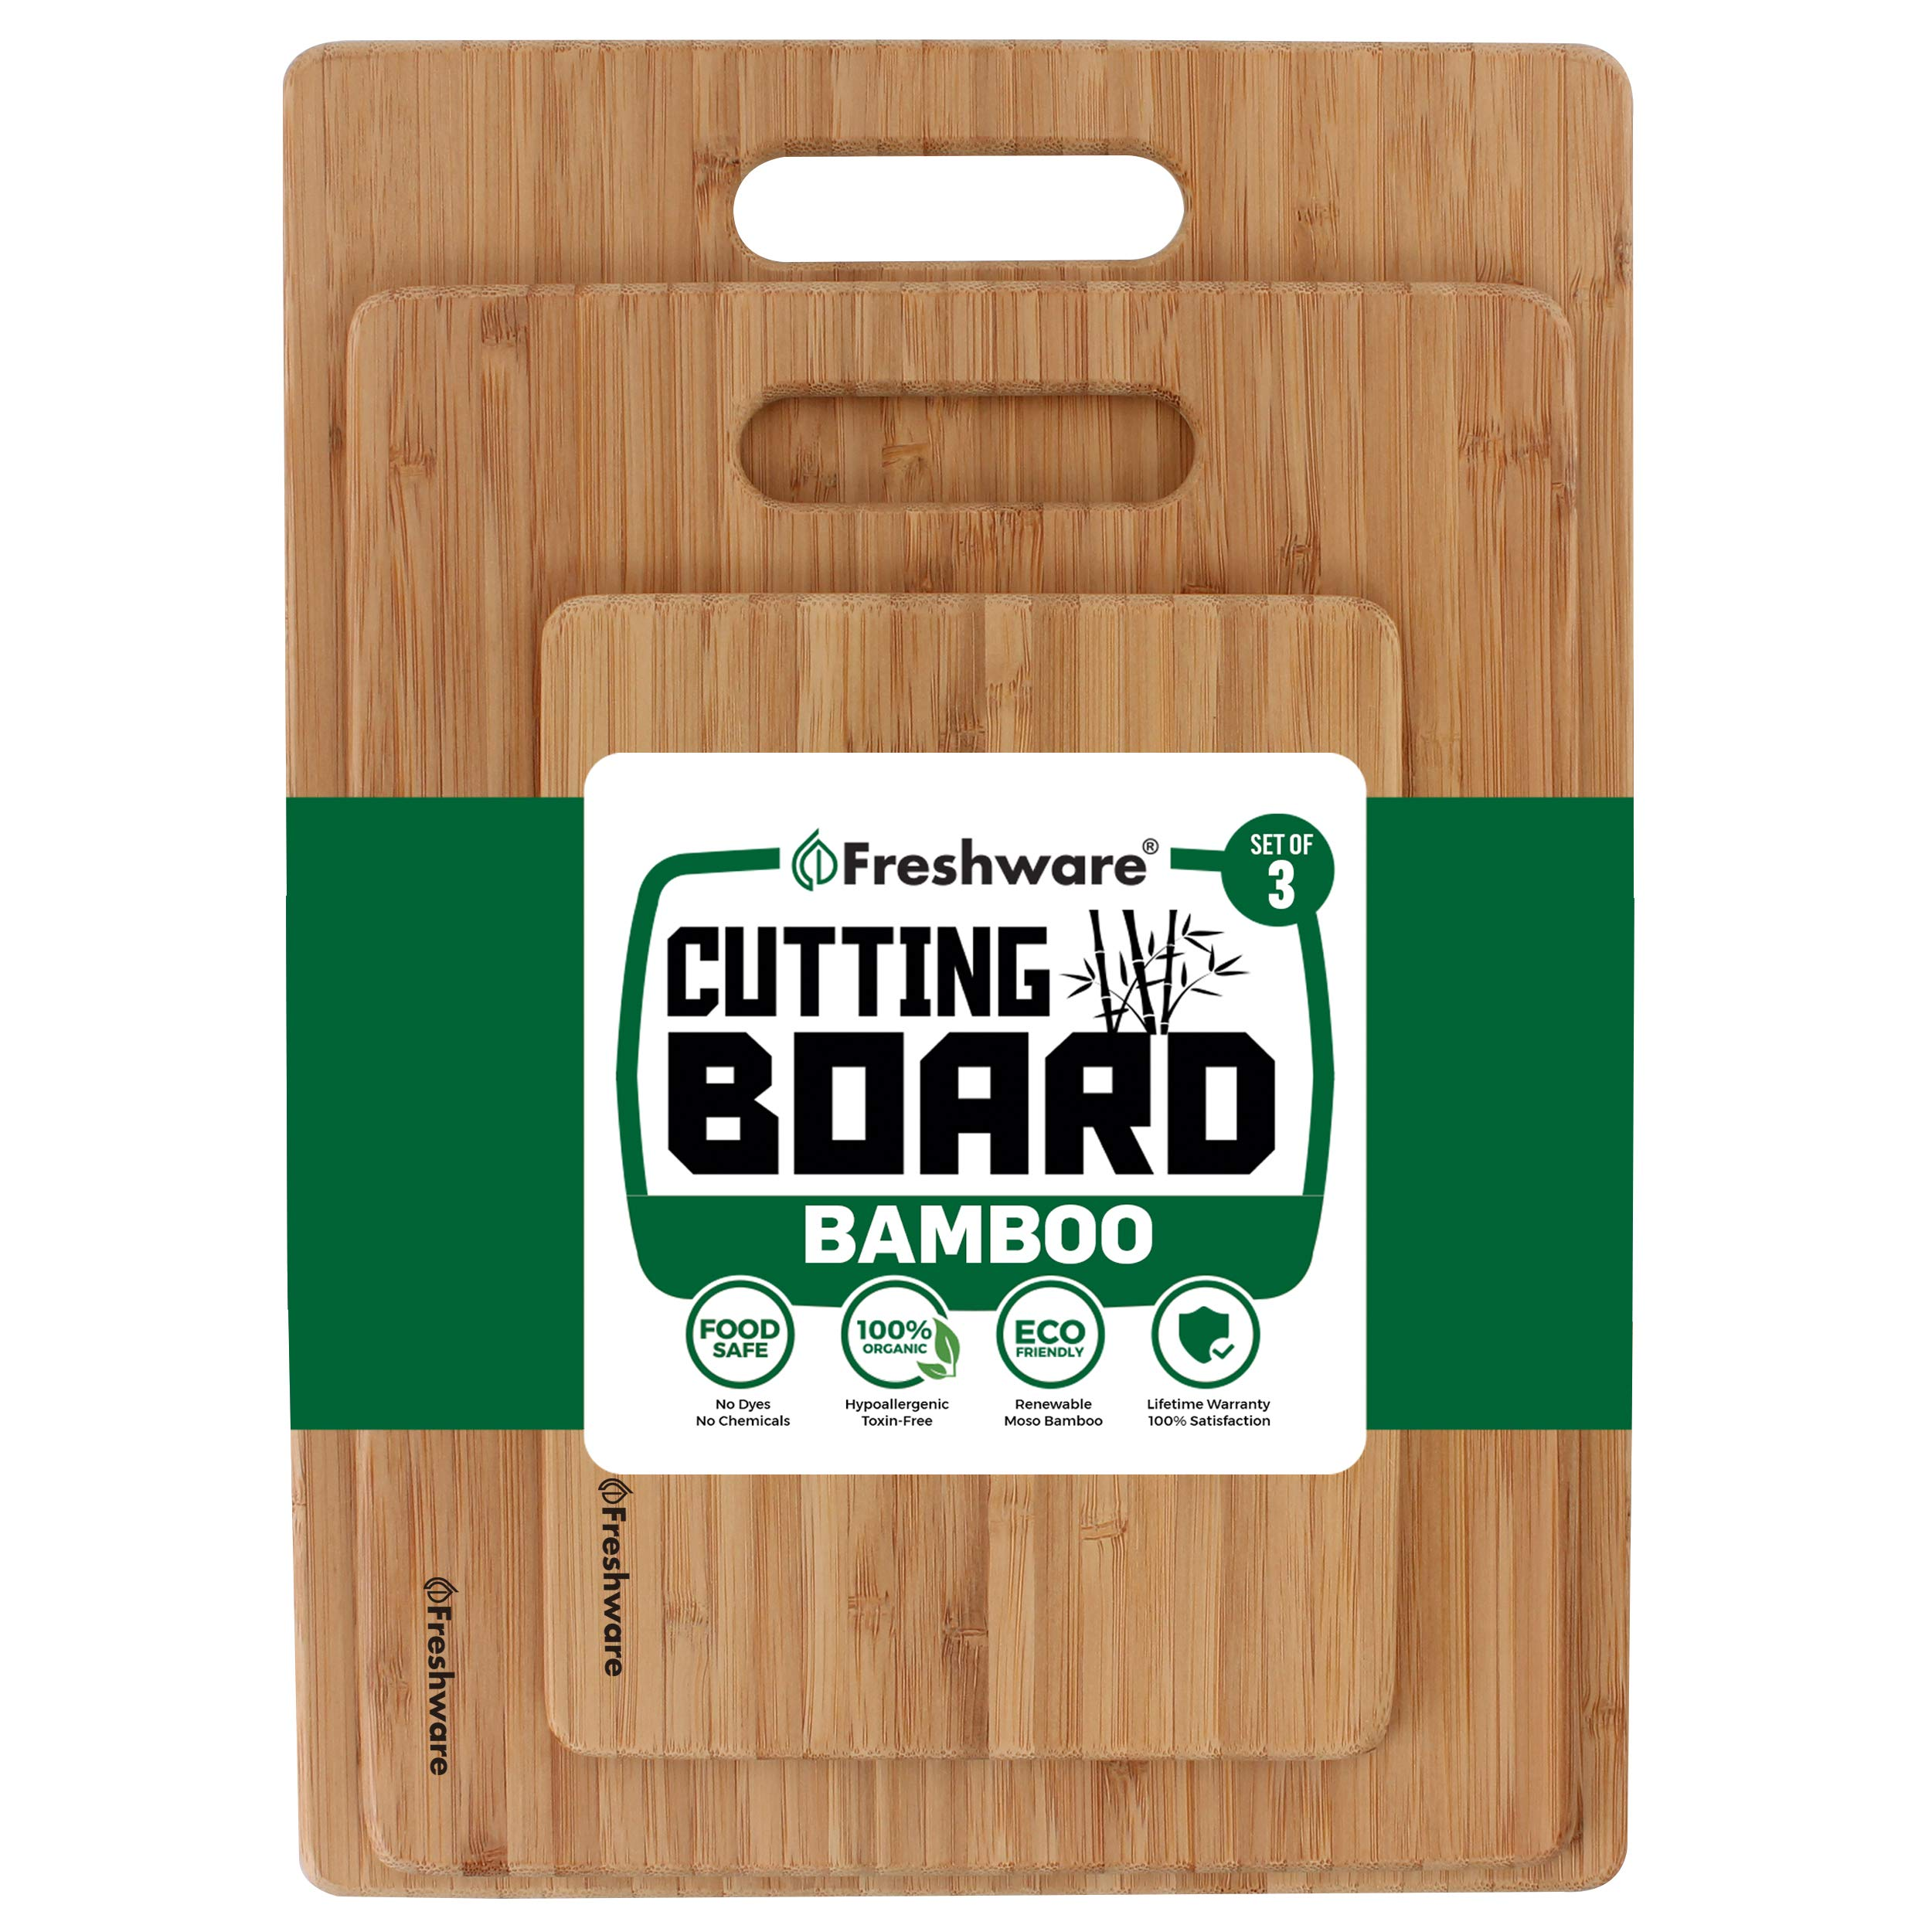 Freshware Bamboo Cutting Board - Wood Chopping Boards for Food Prep, Meat, Vegetables, Fruits, Crackers & Cheese, Set of 3 by Freshware